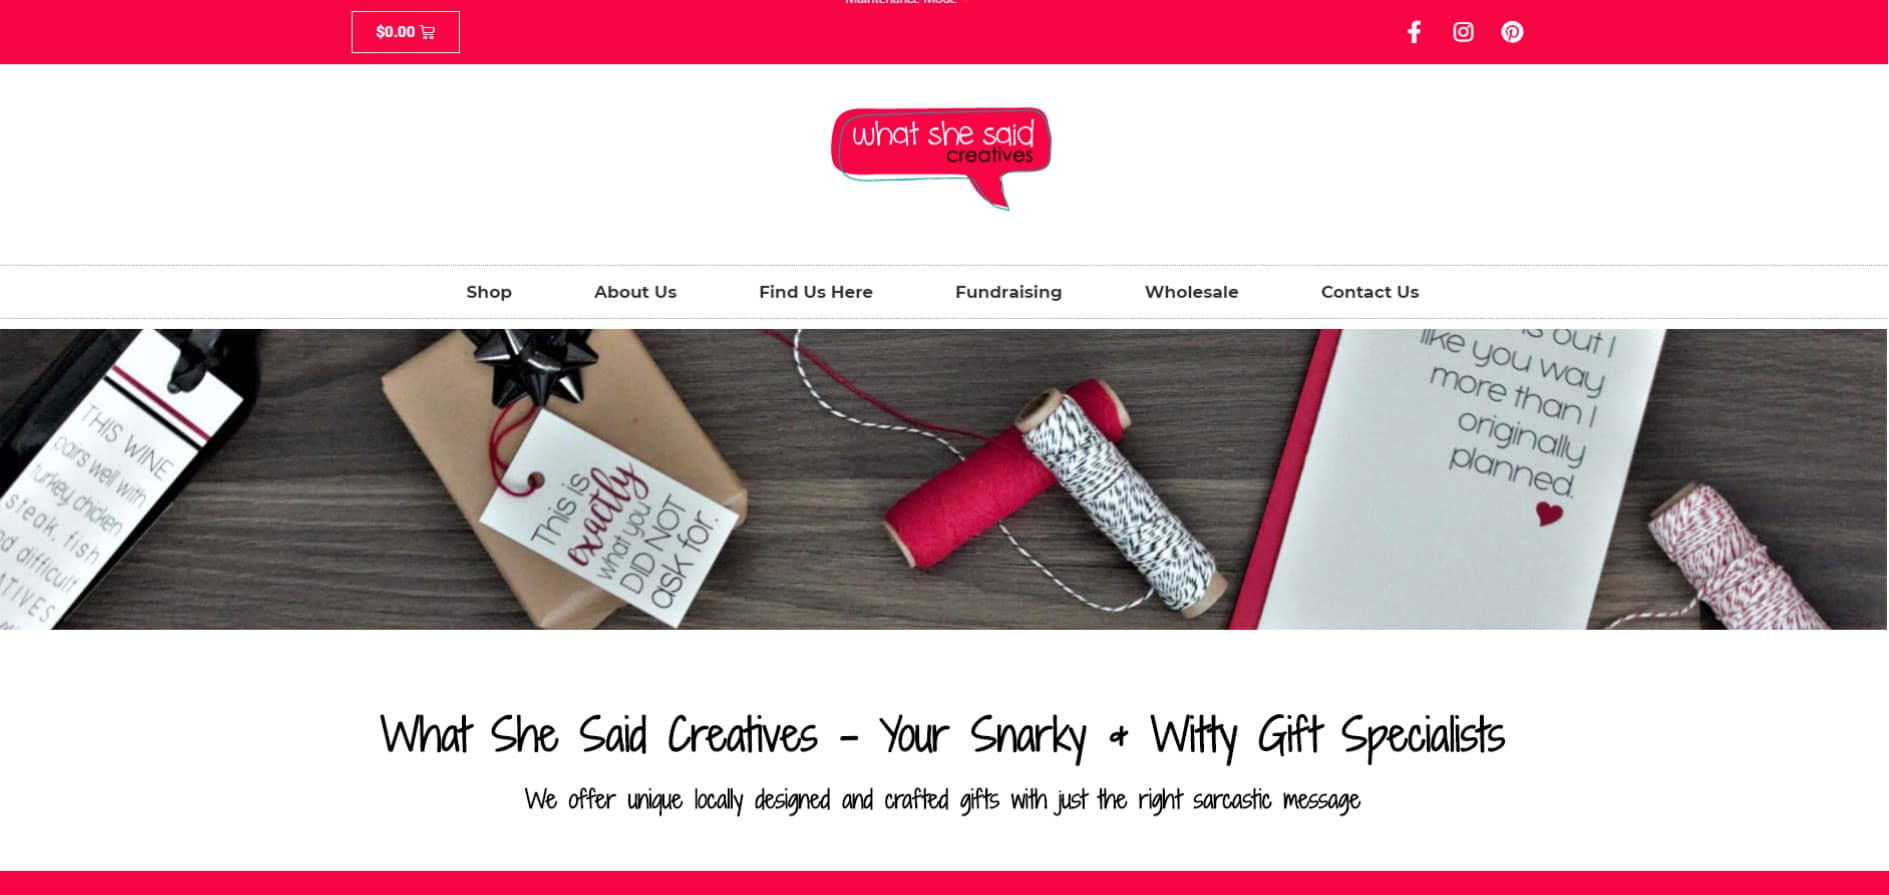 red-nebula-web-design-what-she-said-creatives